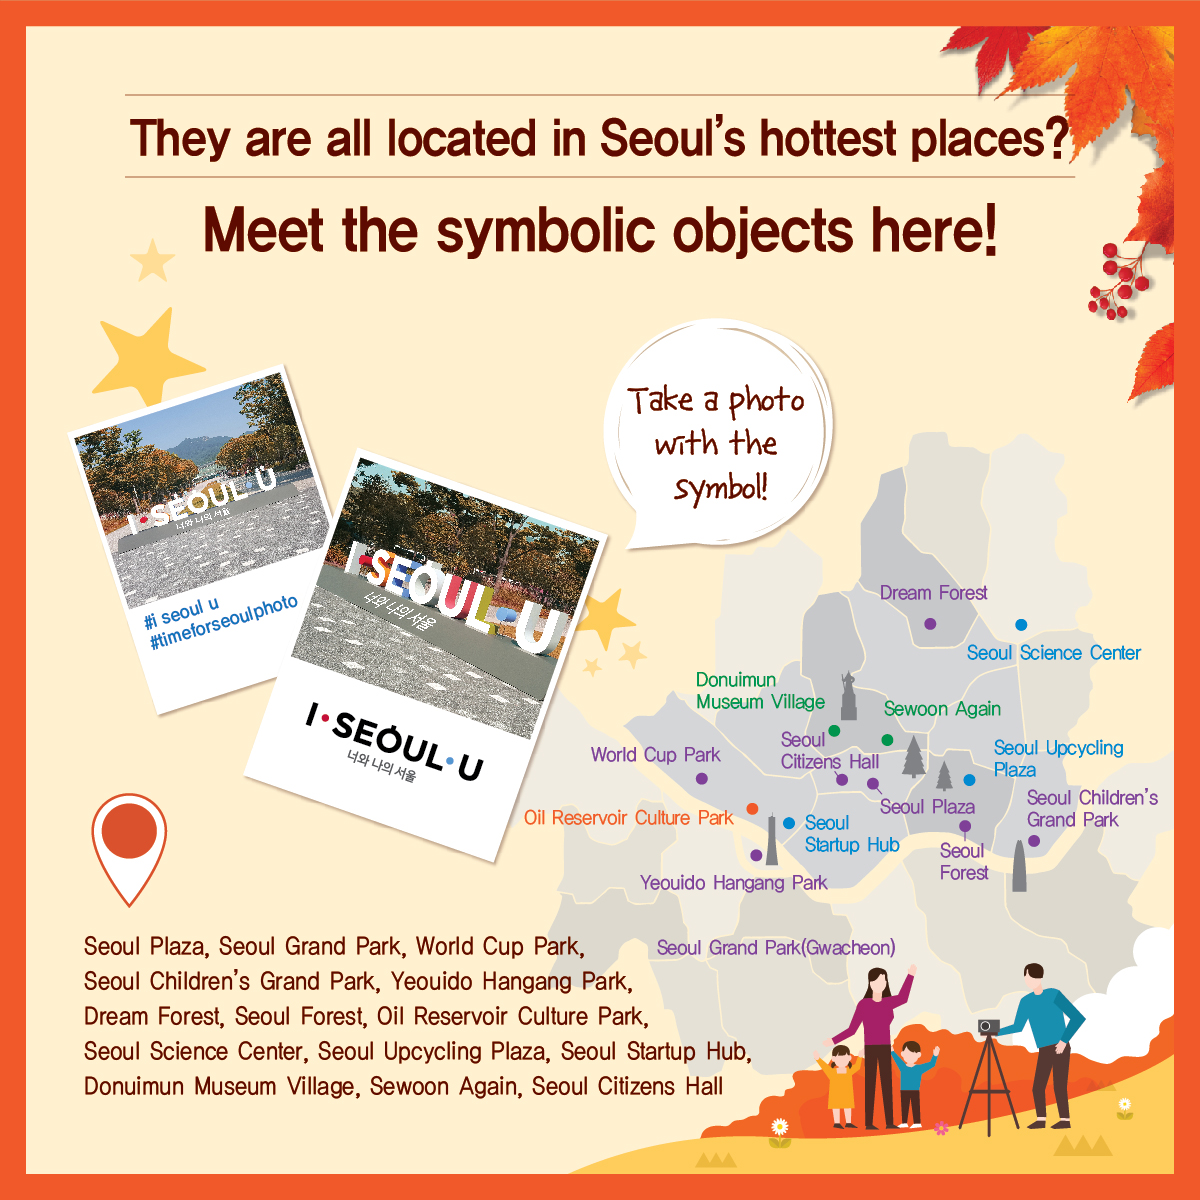 They are all located in Seoul's hottest places? Meet the symbolic objects here! Take a photo with the symbol! #iseoulu #timeforseoulphoto Seoul Plaza, Seoul Grand Park, World Cup Park, Seoul Children's Grand Park, Yeouido Hangang Park, Dream Forest, Seoul Forest, Oil Reservoir Culture Park, Seoul Science Center, Seoul Upcycling Plaza, Seoul Startup Hub, Donuimun Museum Village, Sewoon Again, Seoul Citizens Hall